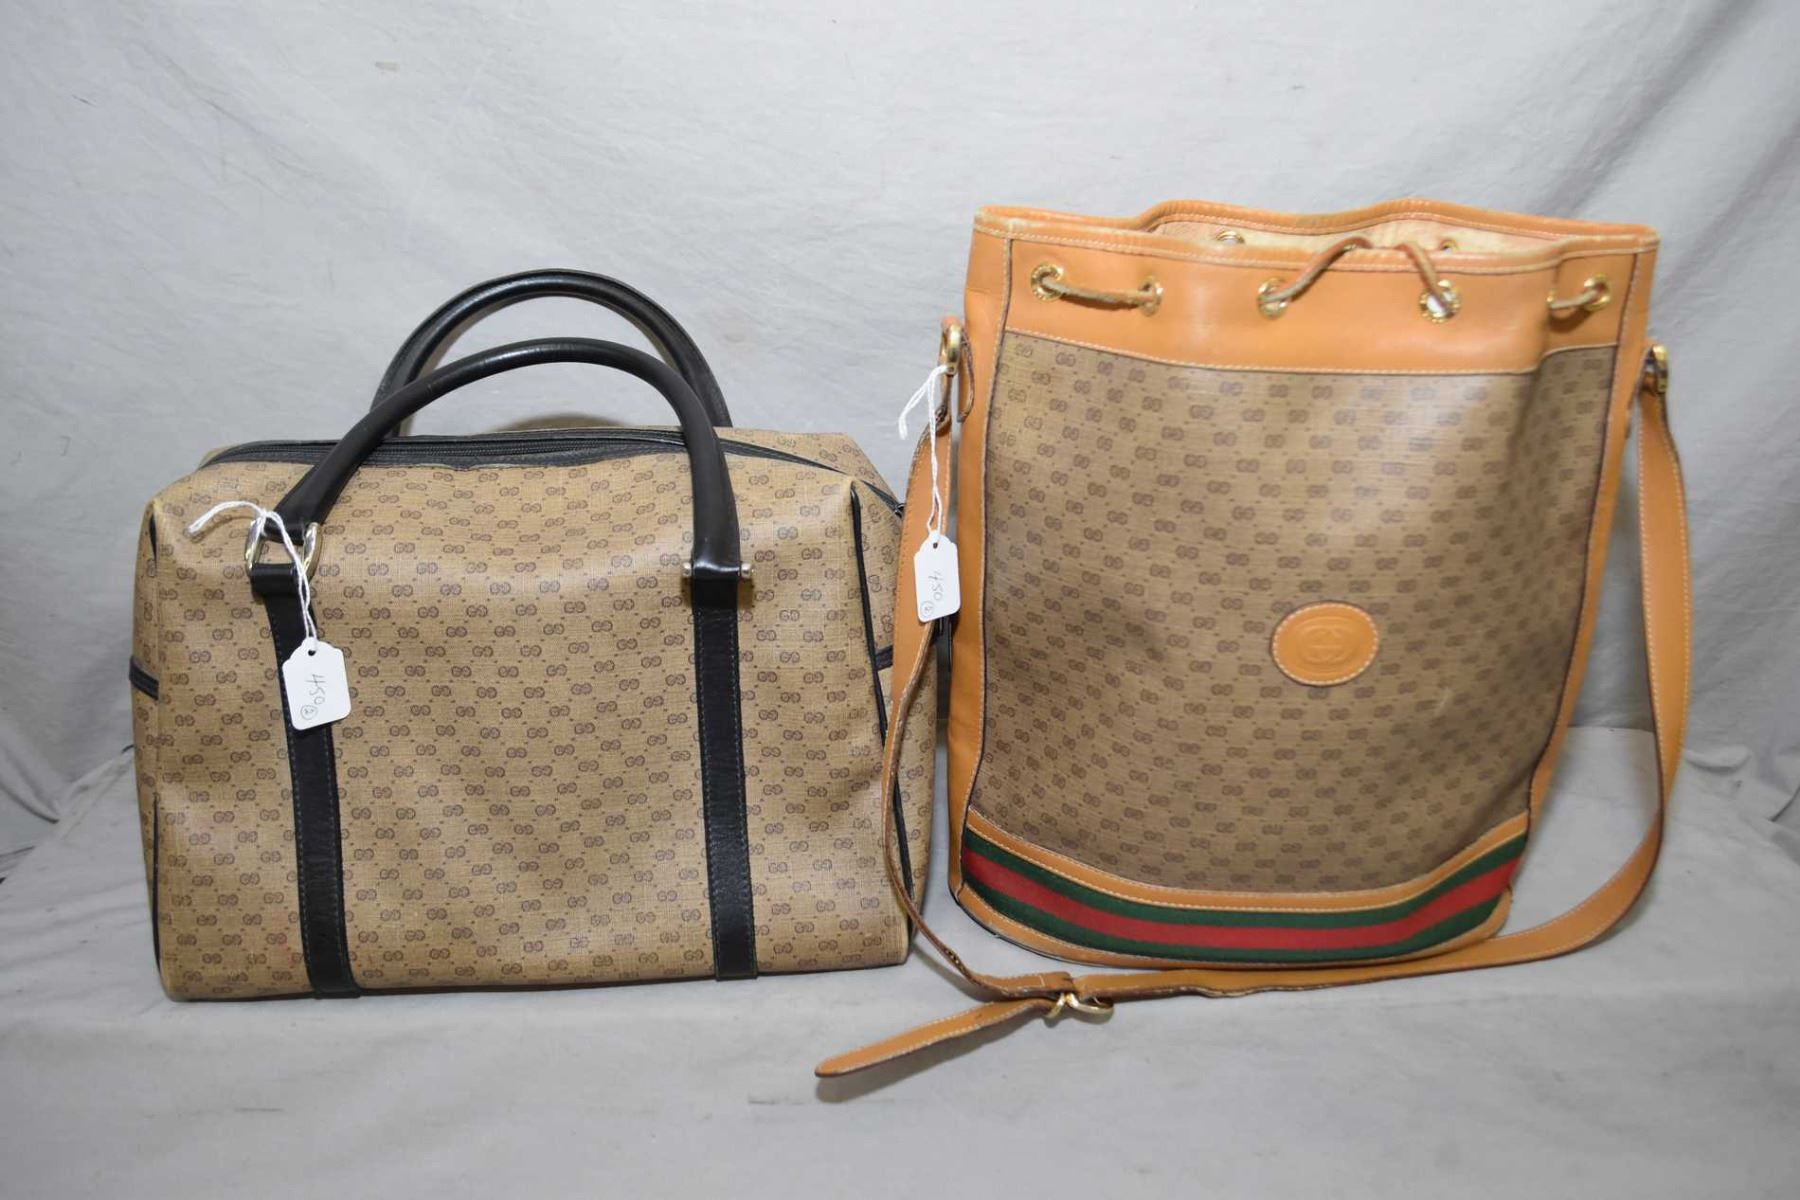 dbe58dea74c61 Two vintage genuine Gucci bags including bucket tote-note some ...